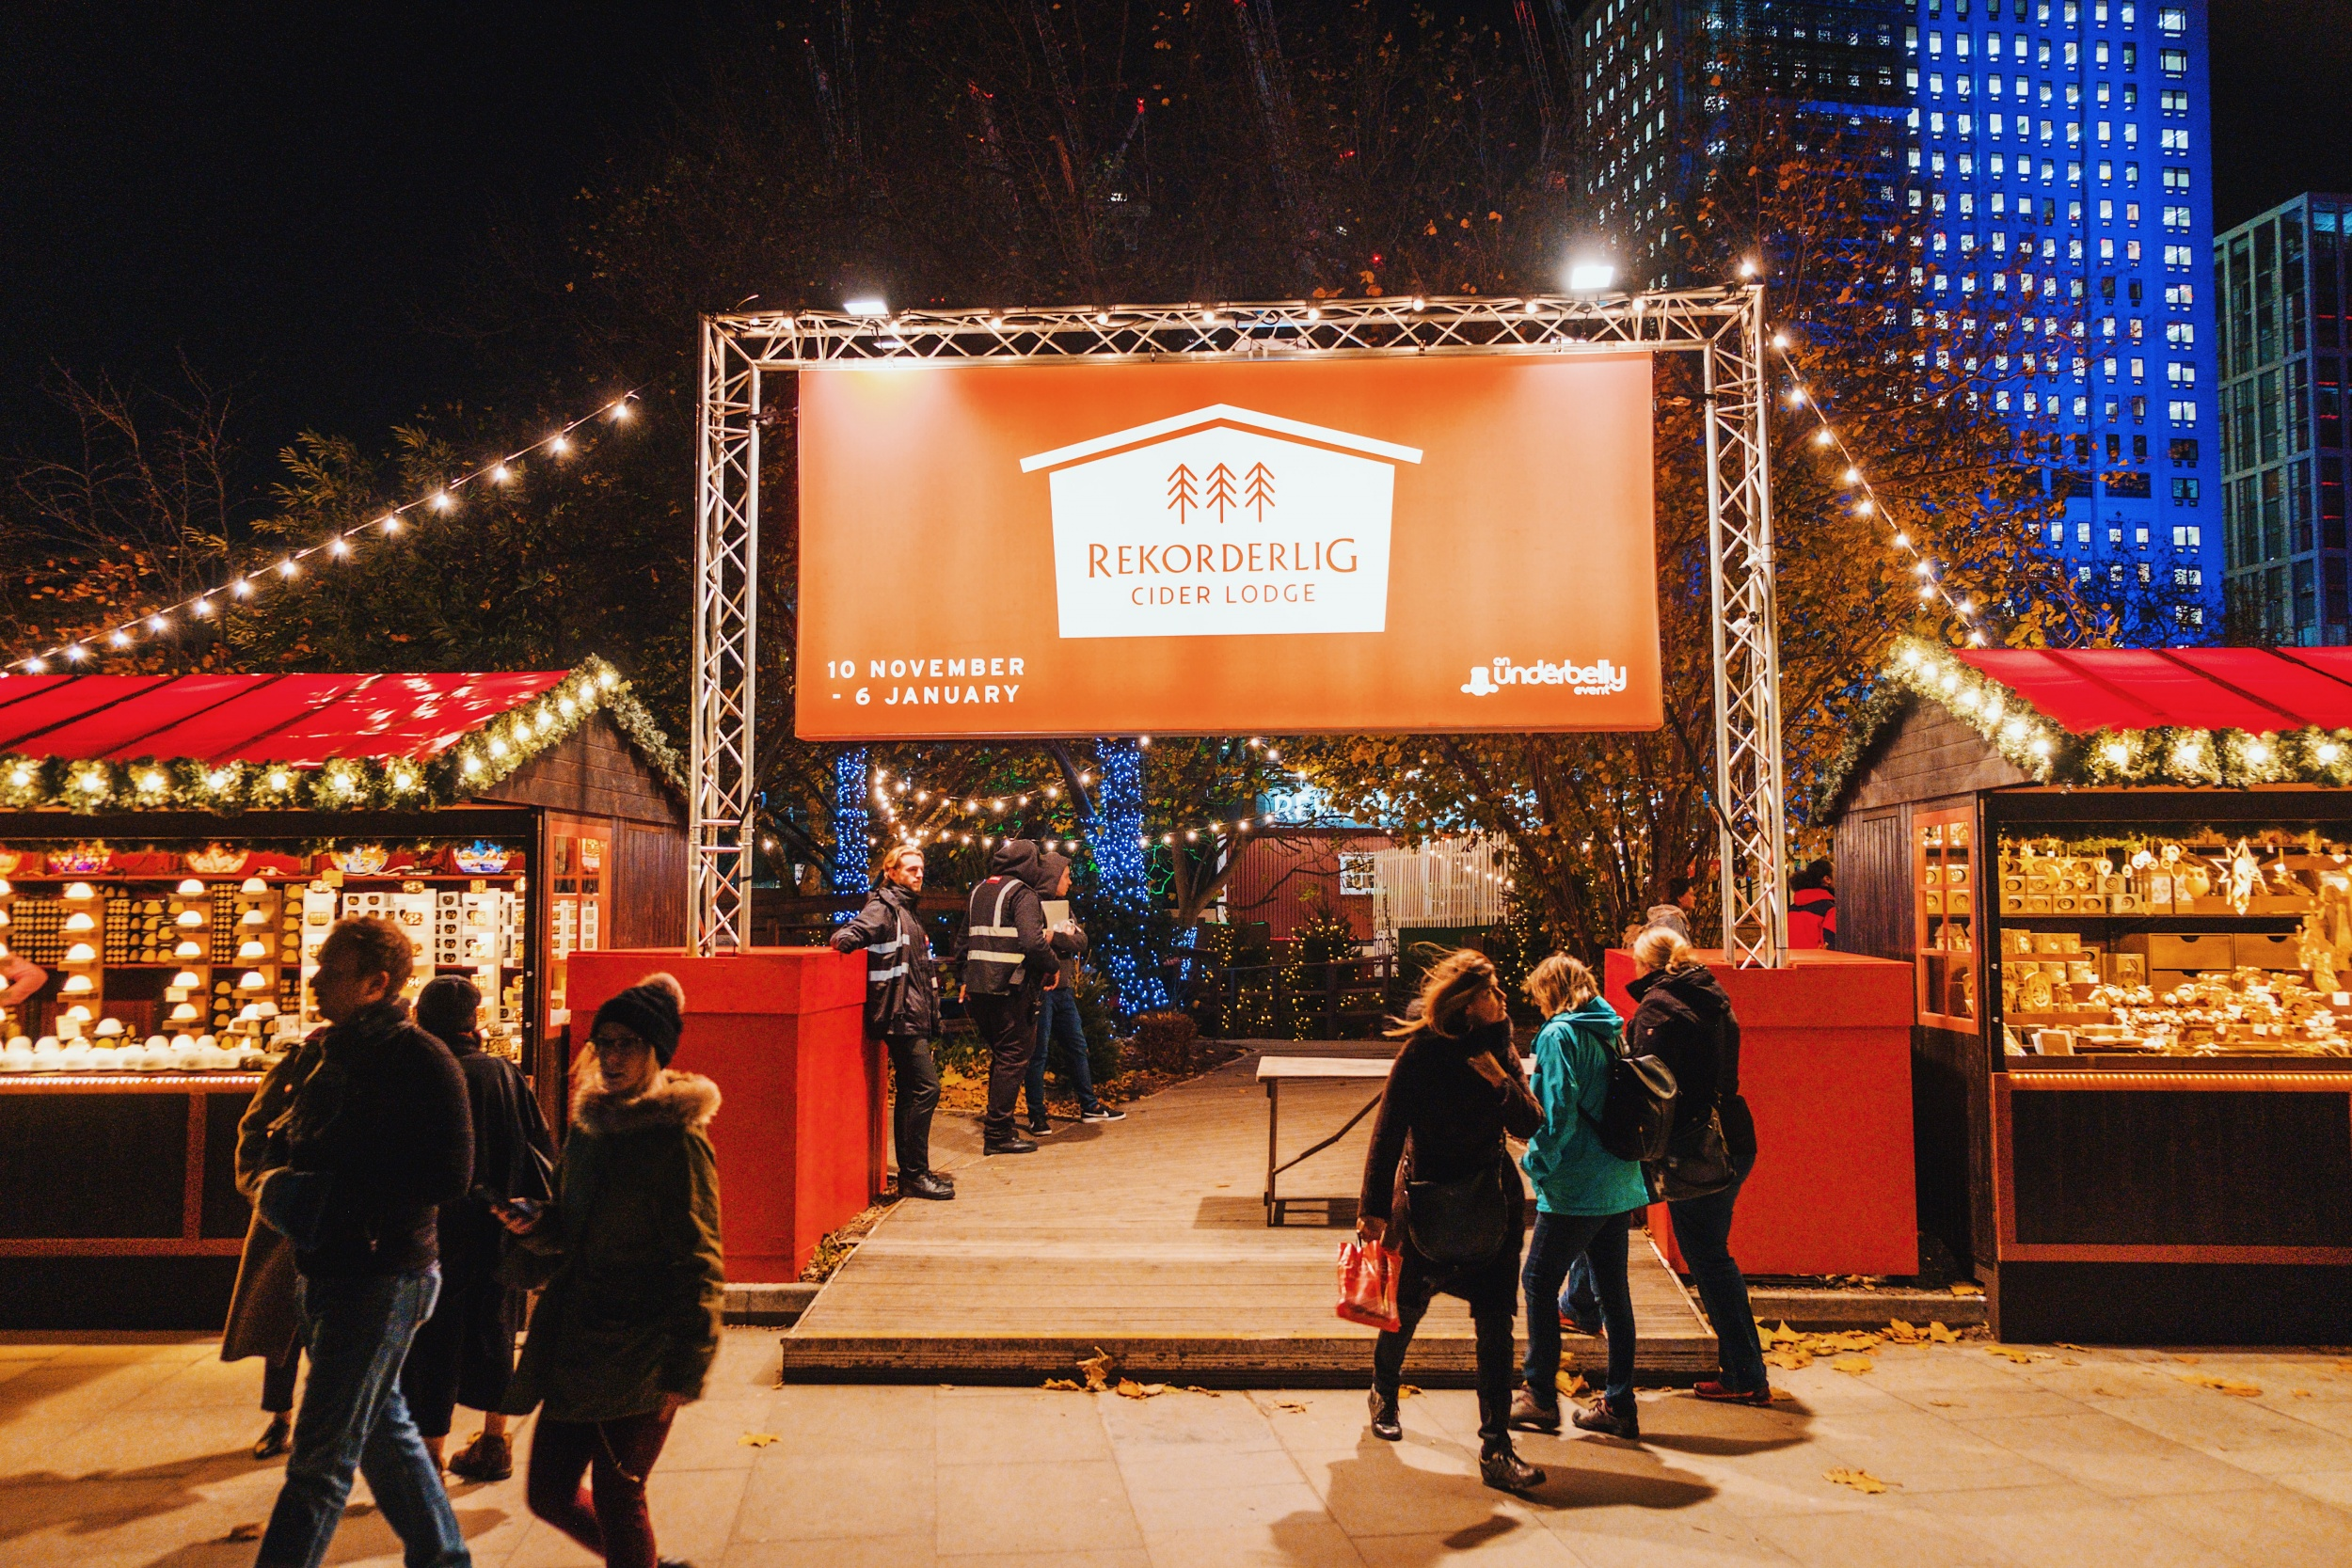 SouthBank Christmas Market | Three of the best Christmas markets in London that you must visit